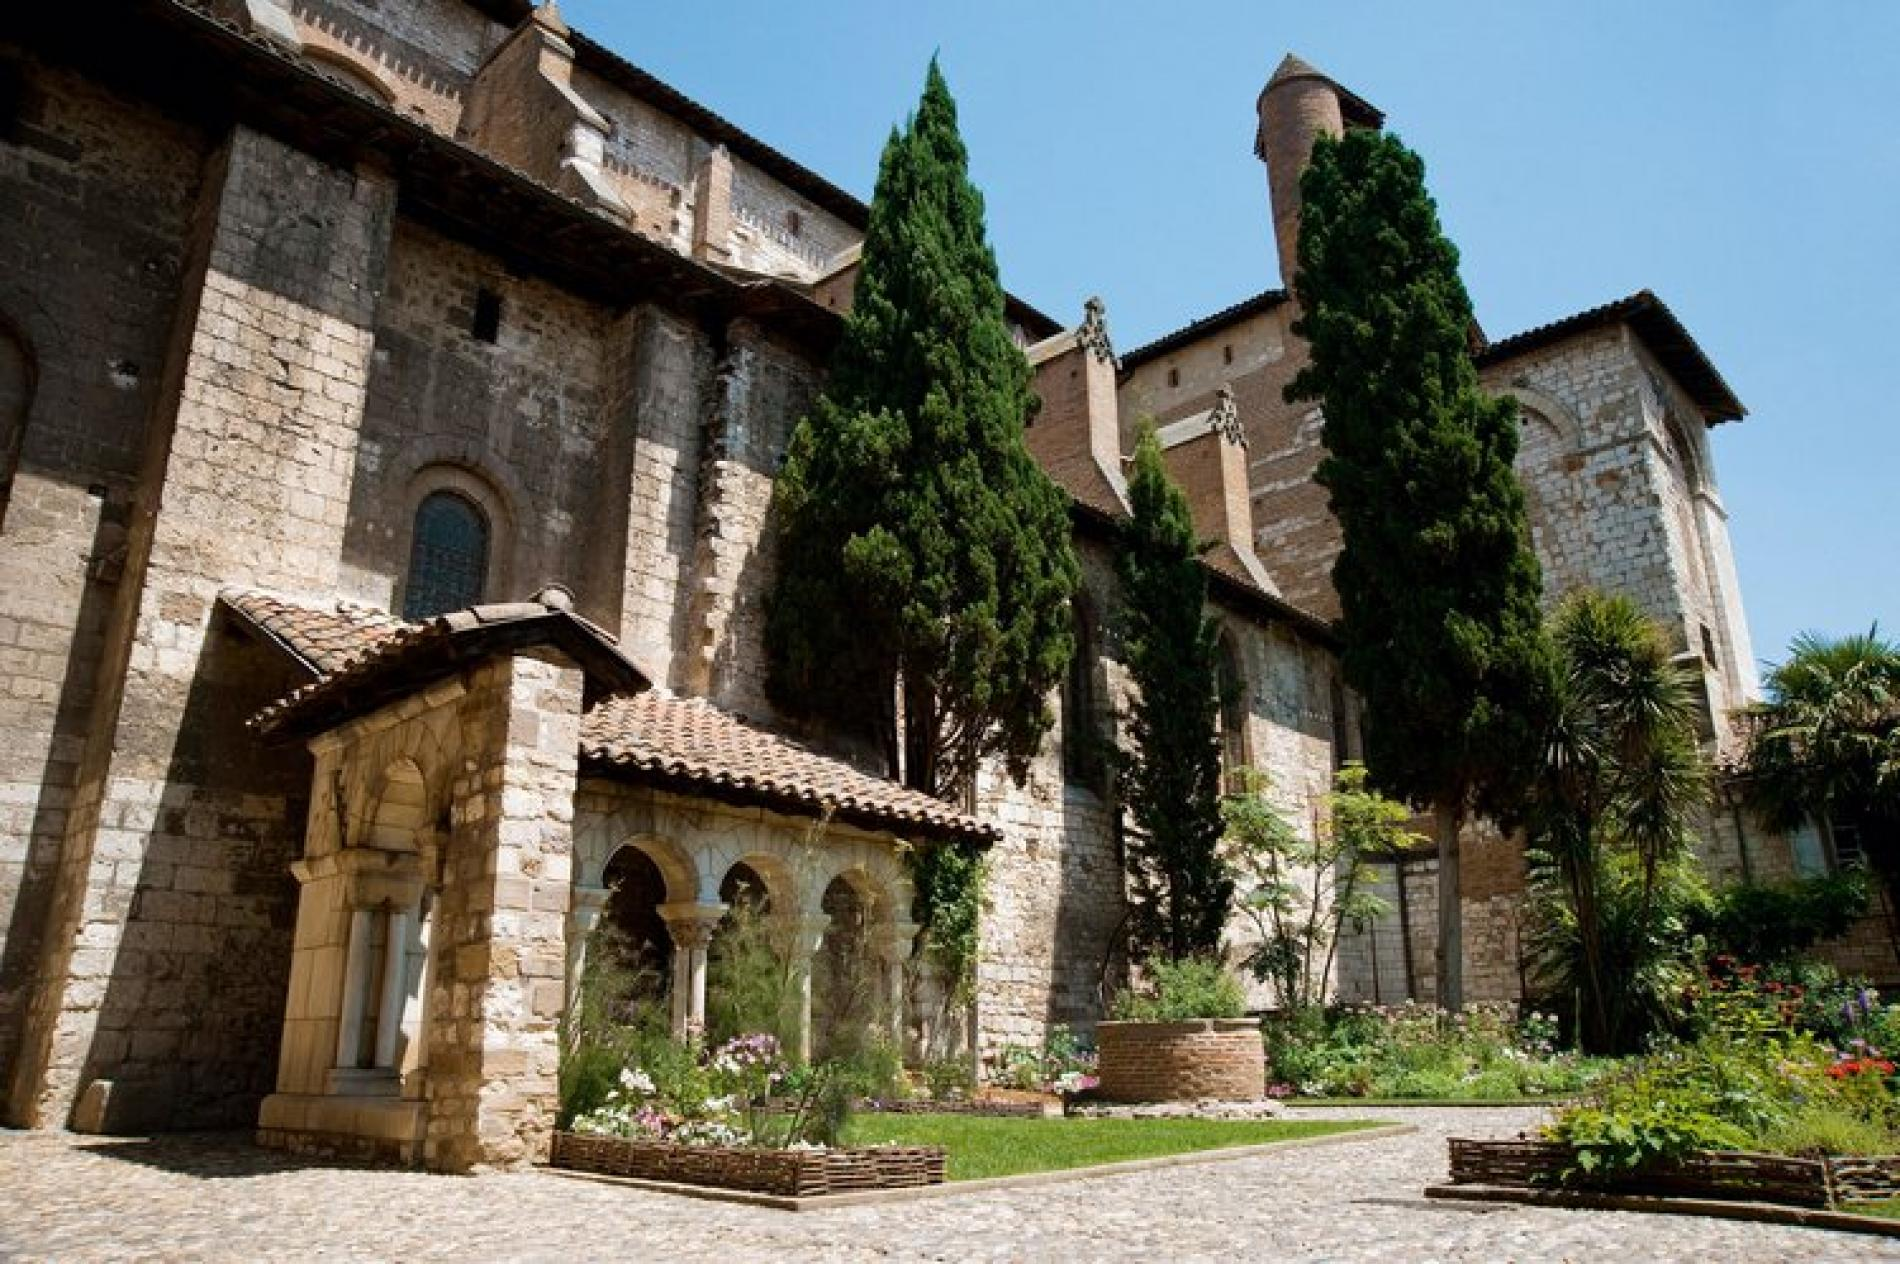 VISIT: The cloister and Saint Salvi Collegiate Church